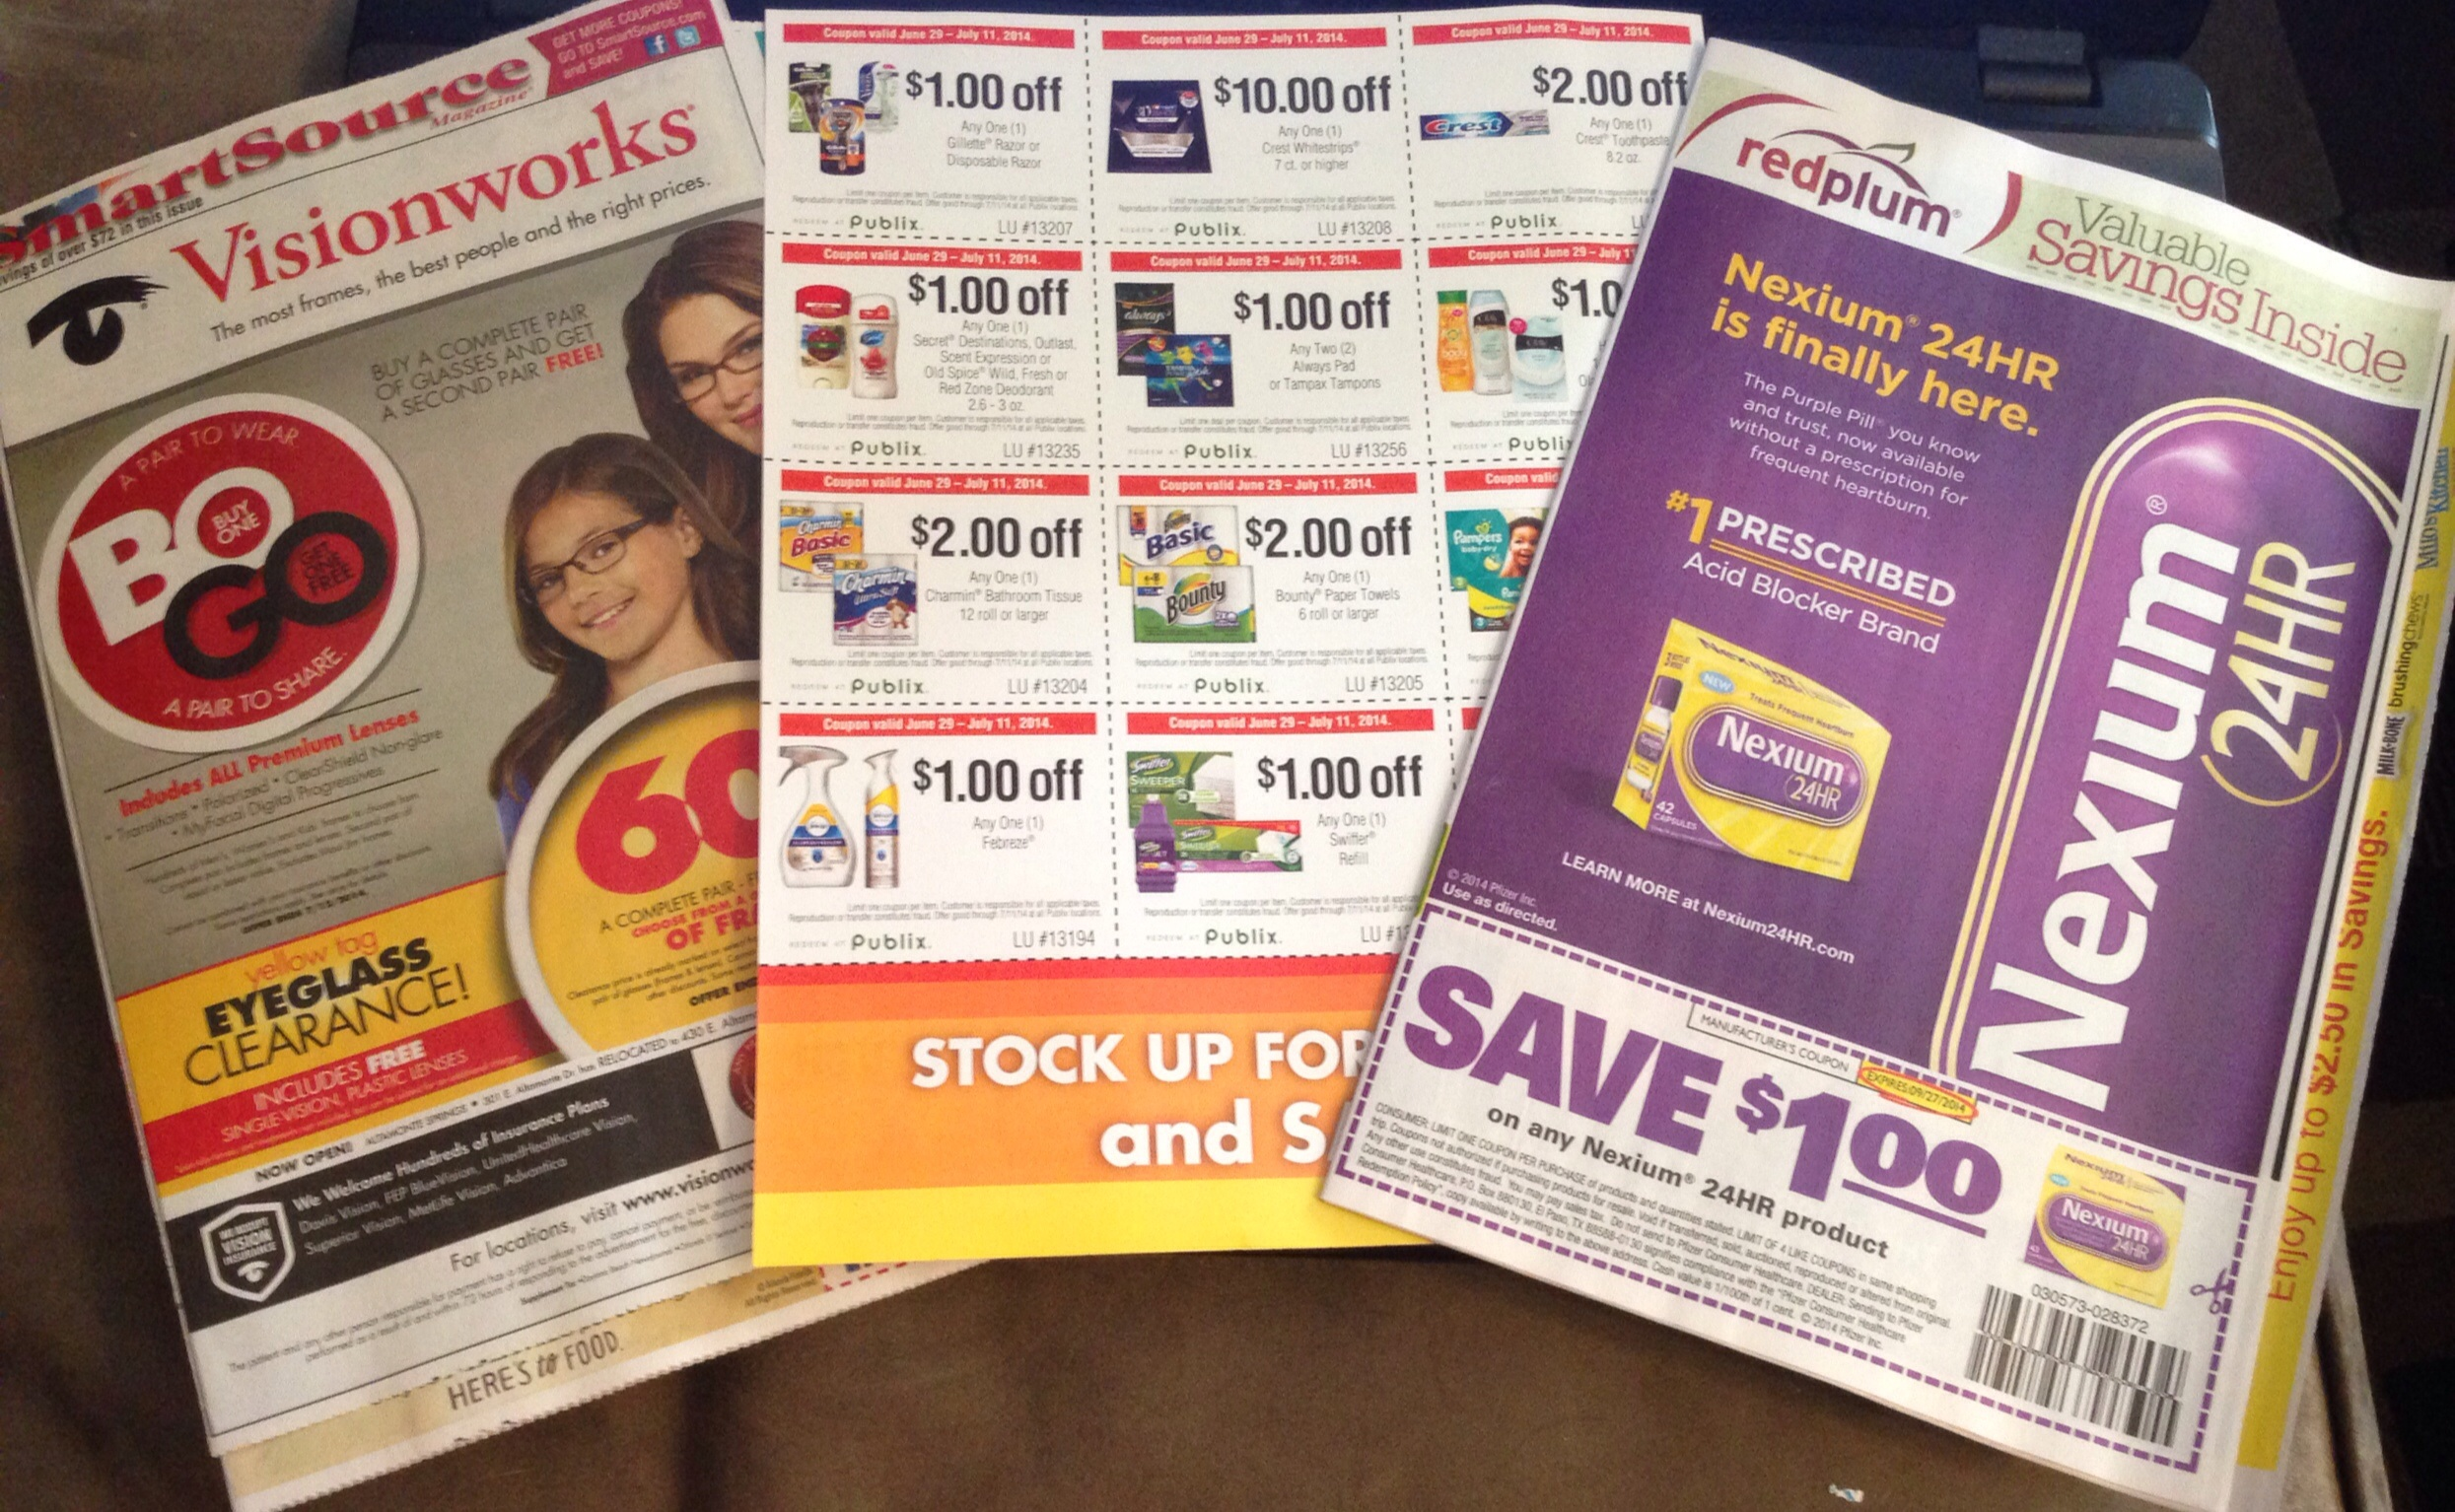 Coupon inserts today's paper